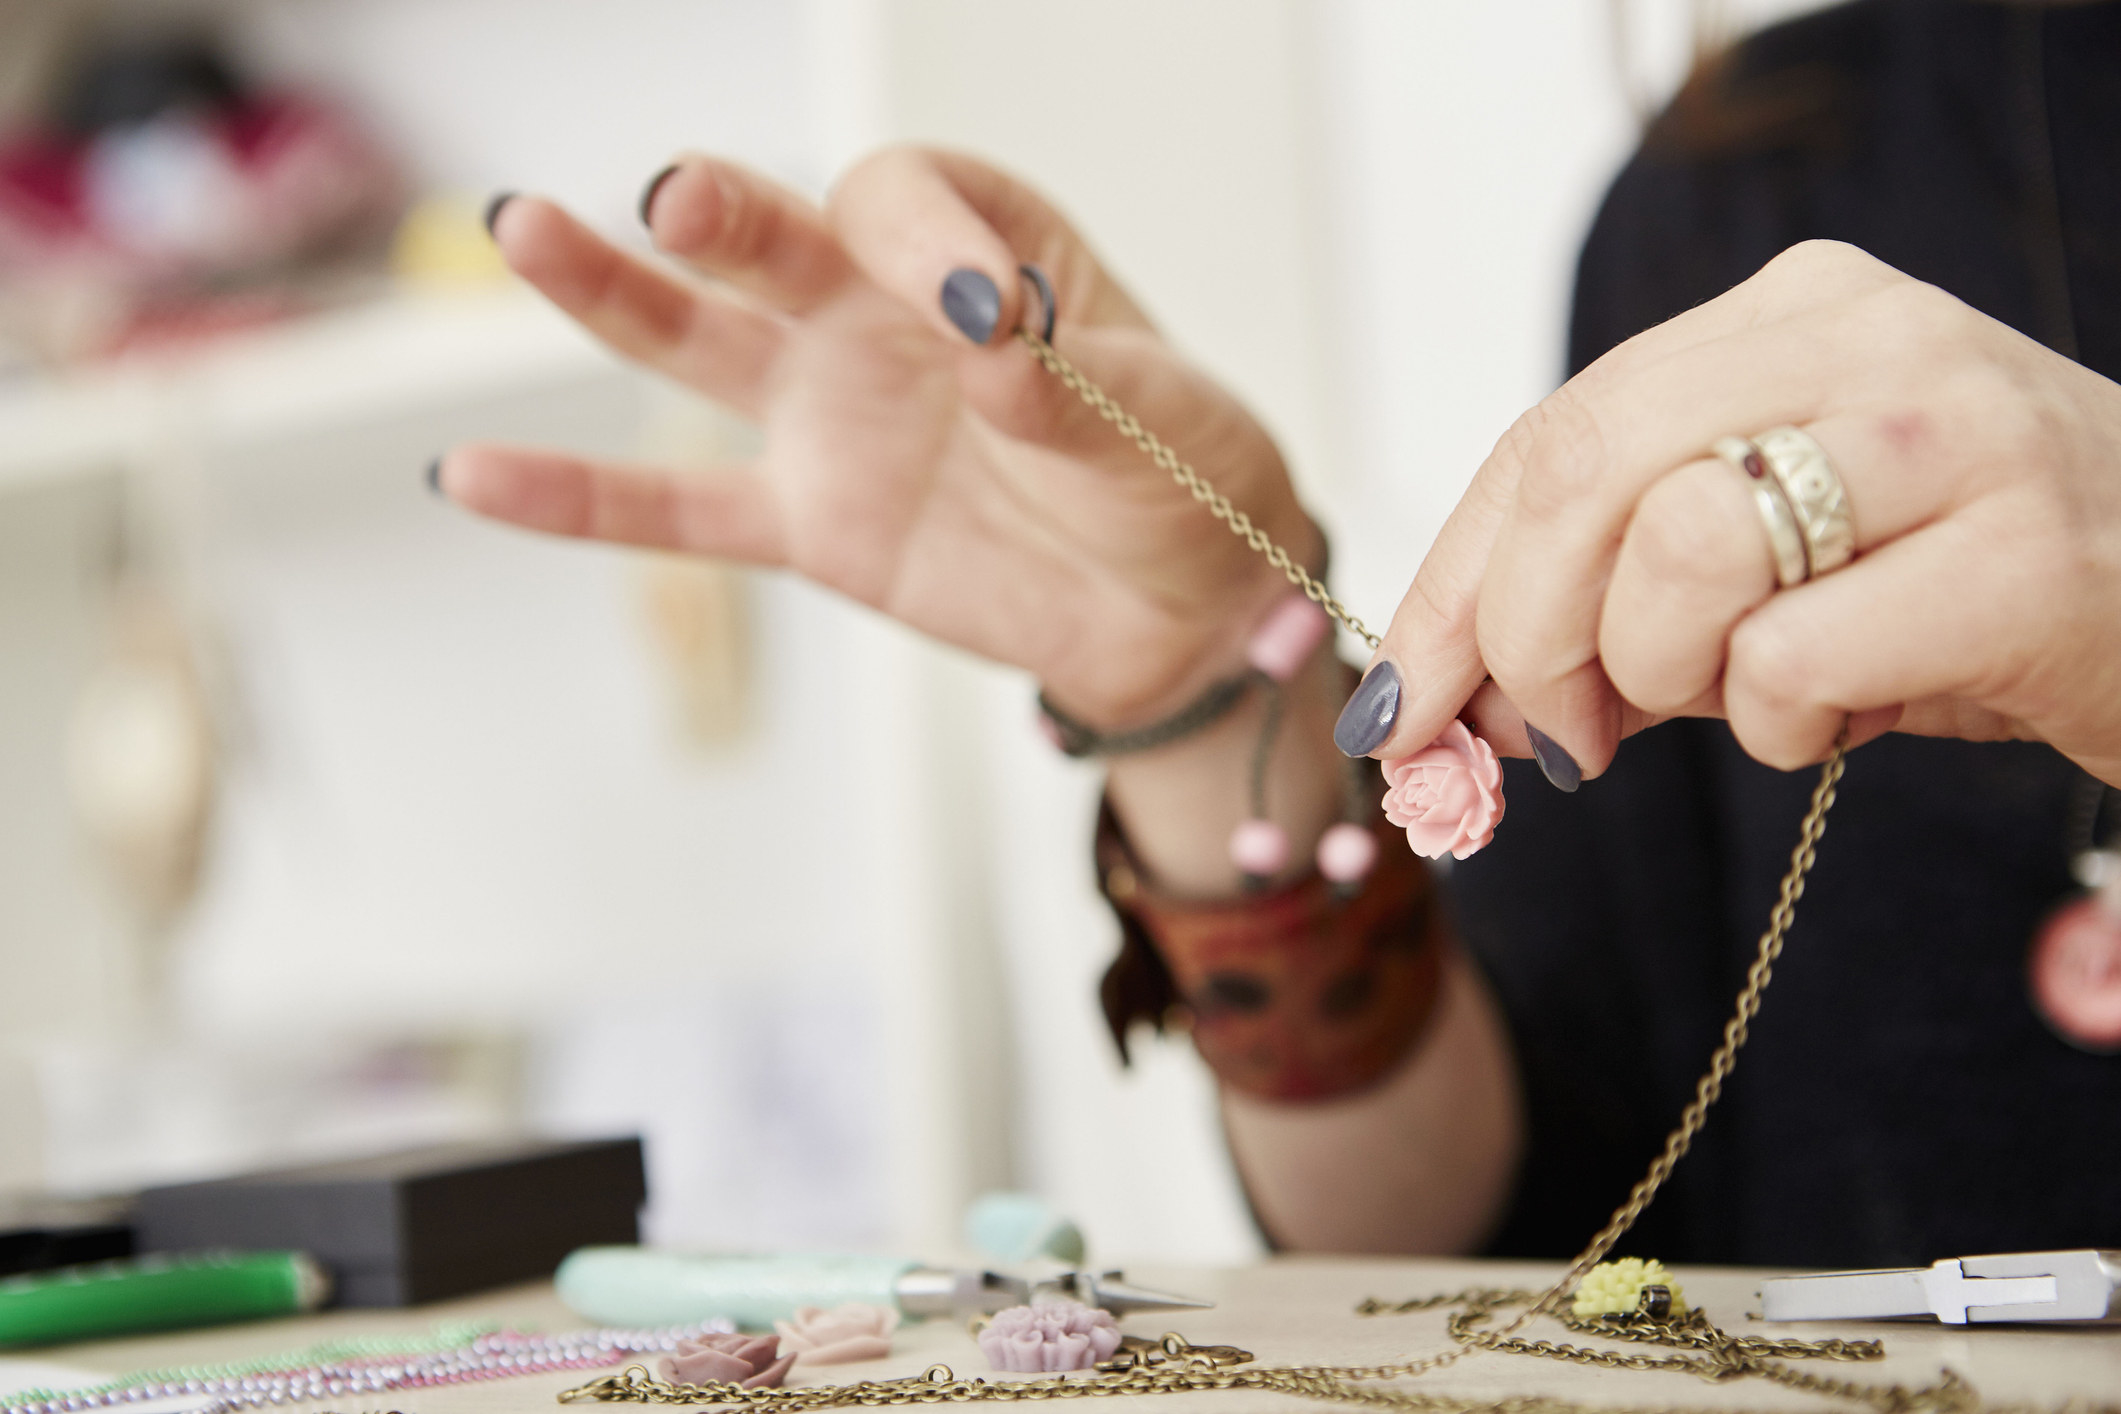 close up of a person making a necklace